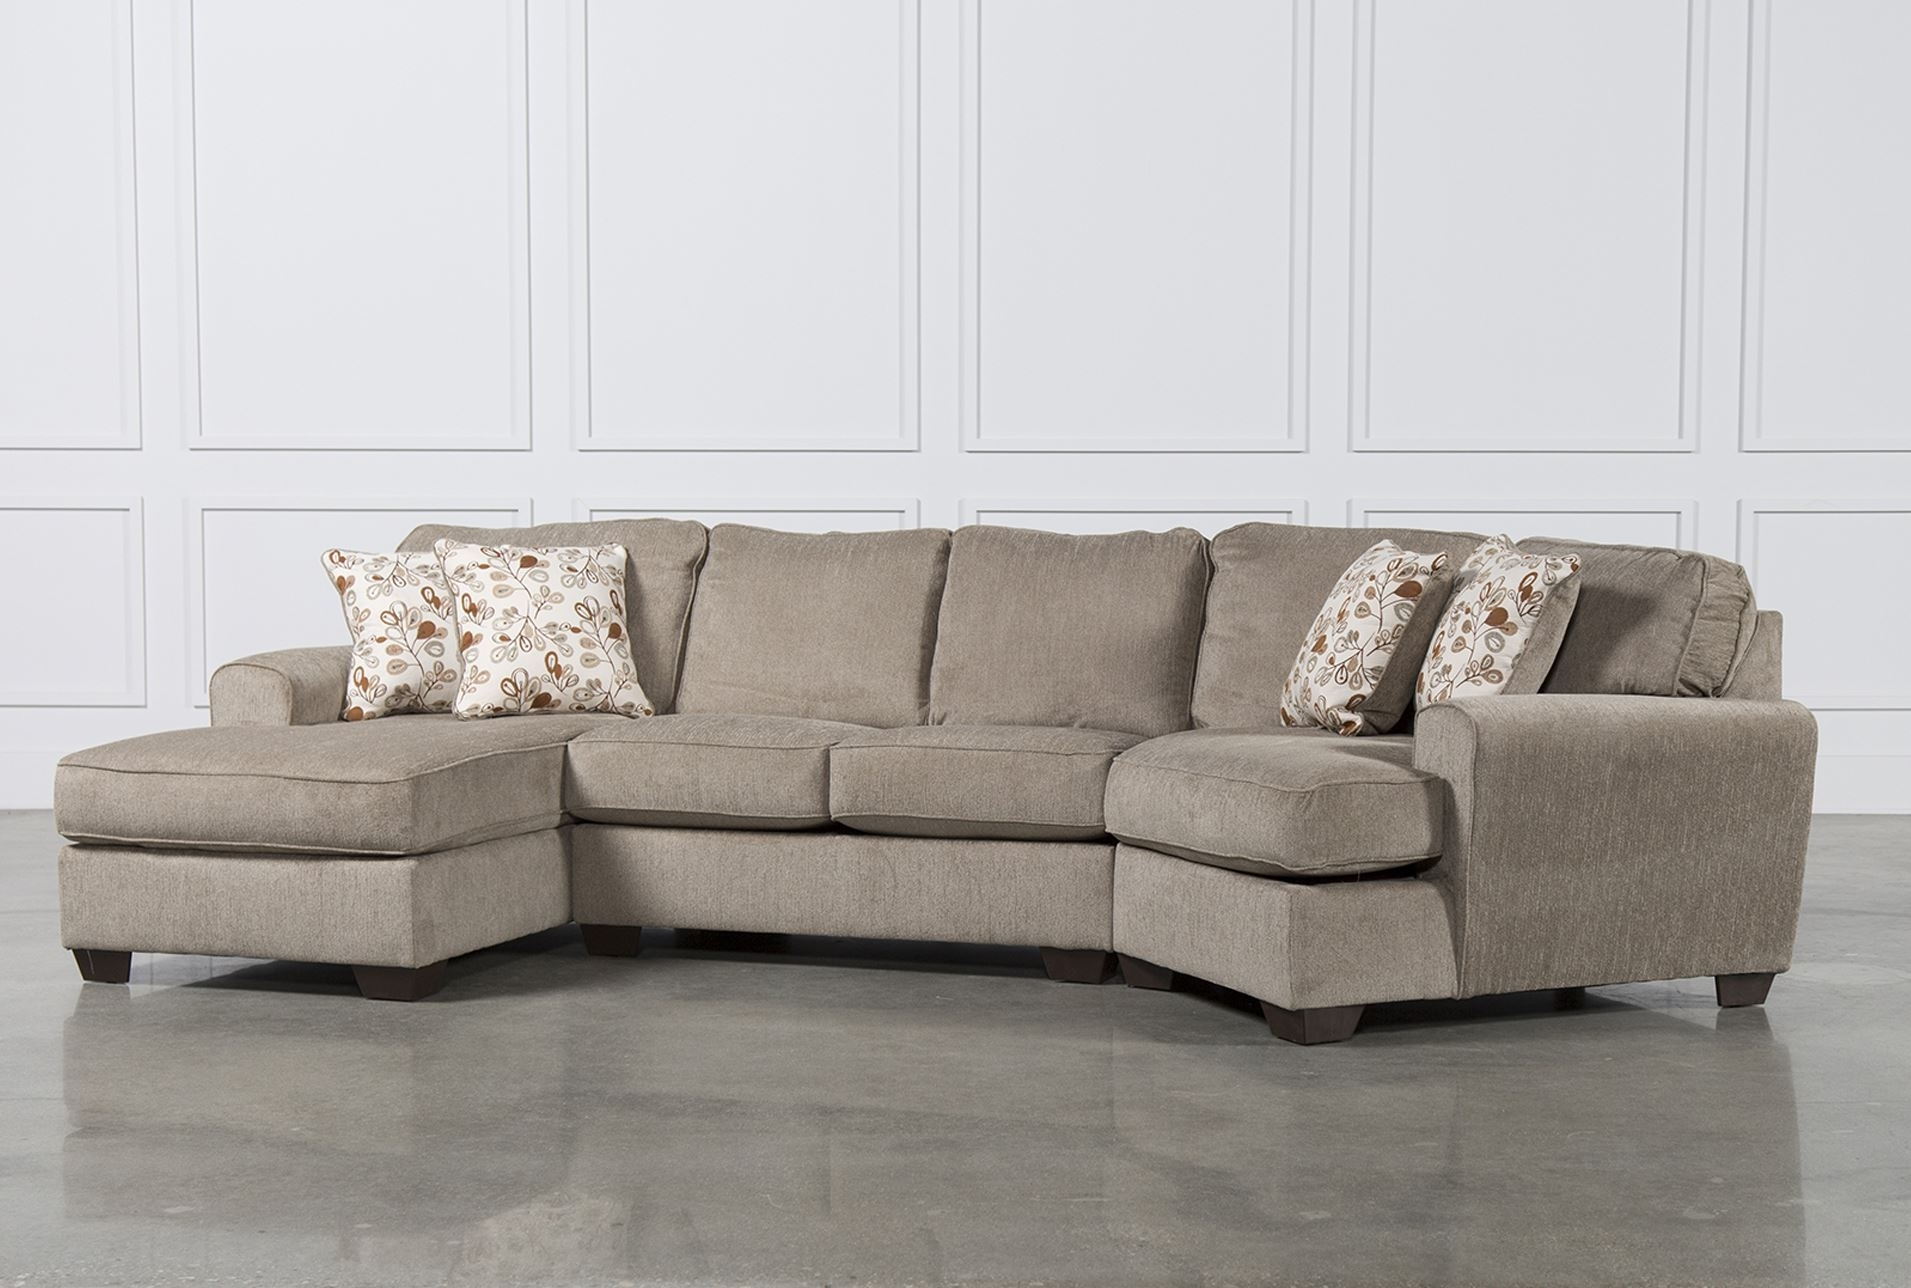 Sectional Sofa : Large Comfy Sectional 4 Piece Sectional Couch pertaining to 3 Piece Sectional Sleeper Sofas (Image 9 of 10)